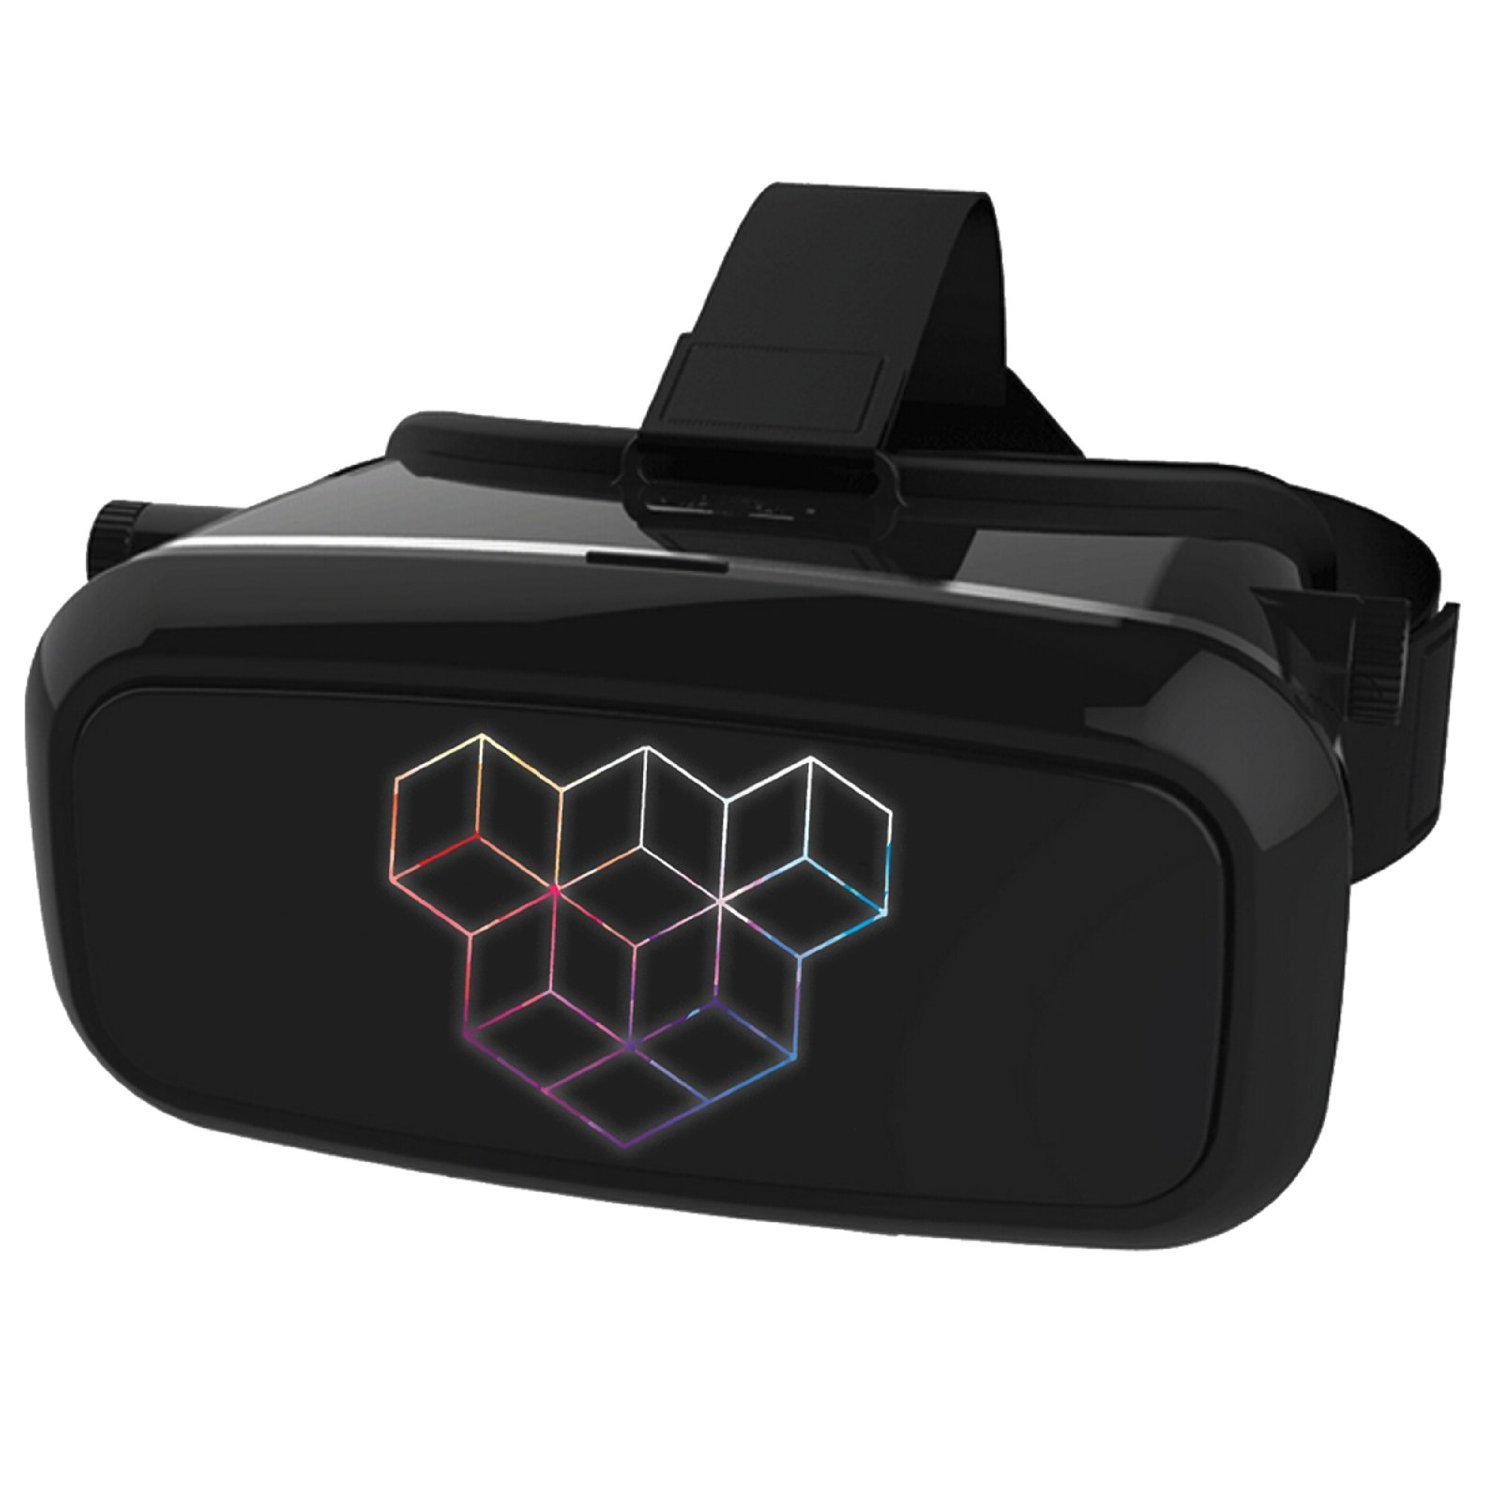 VOXEL 2.0 VR Virtual Reality Headset – Active 3D Glasses & Home Theater System for Video Games & Movies – Samsung, iPhone and Google Smartphones – Mobile Game